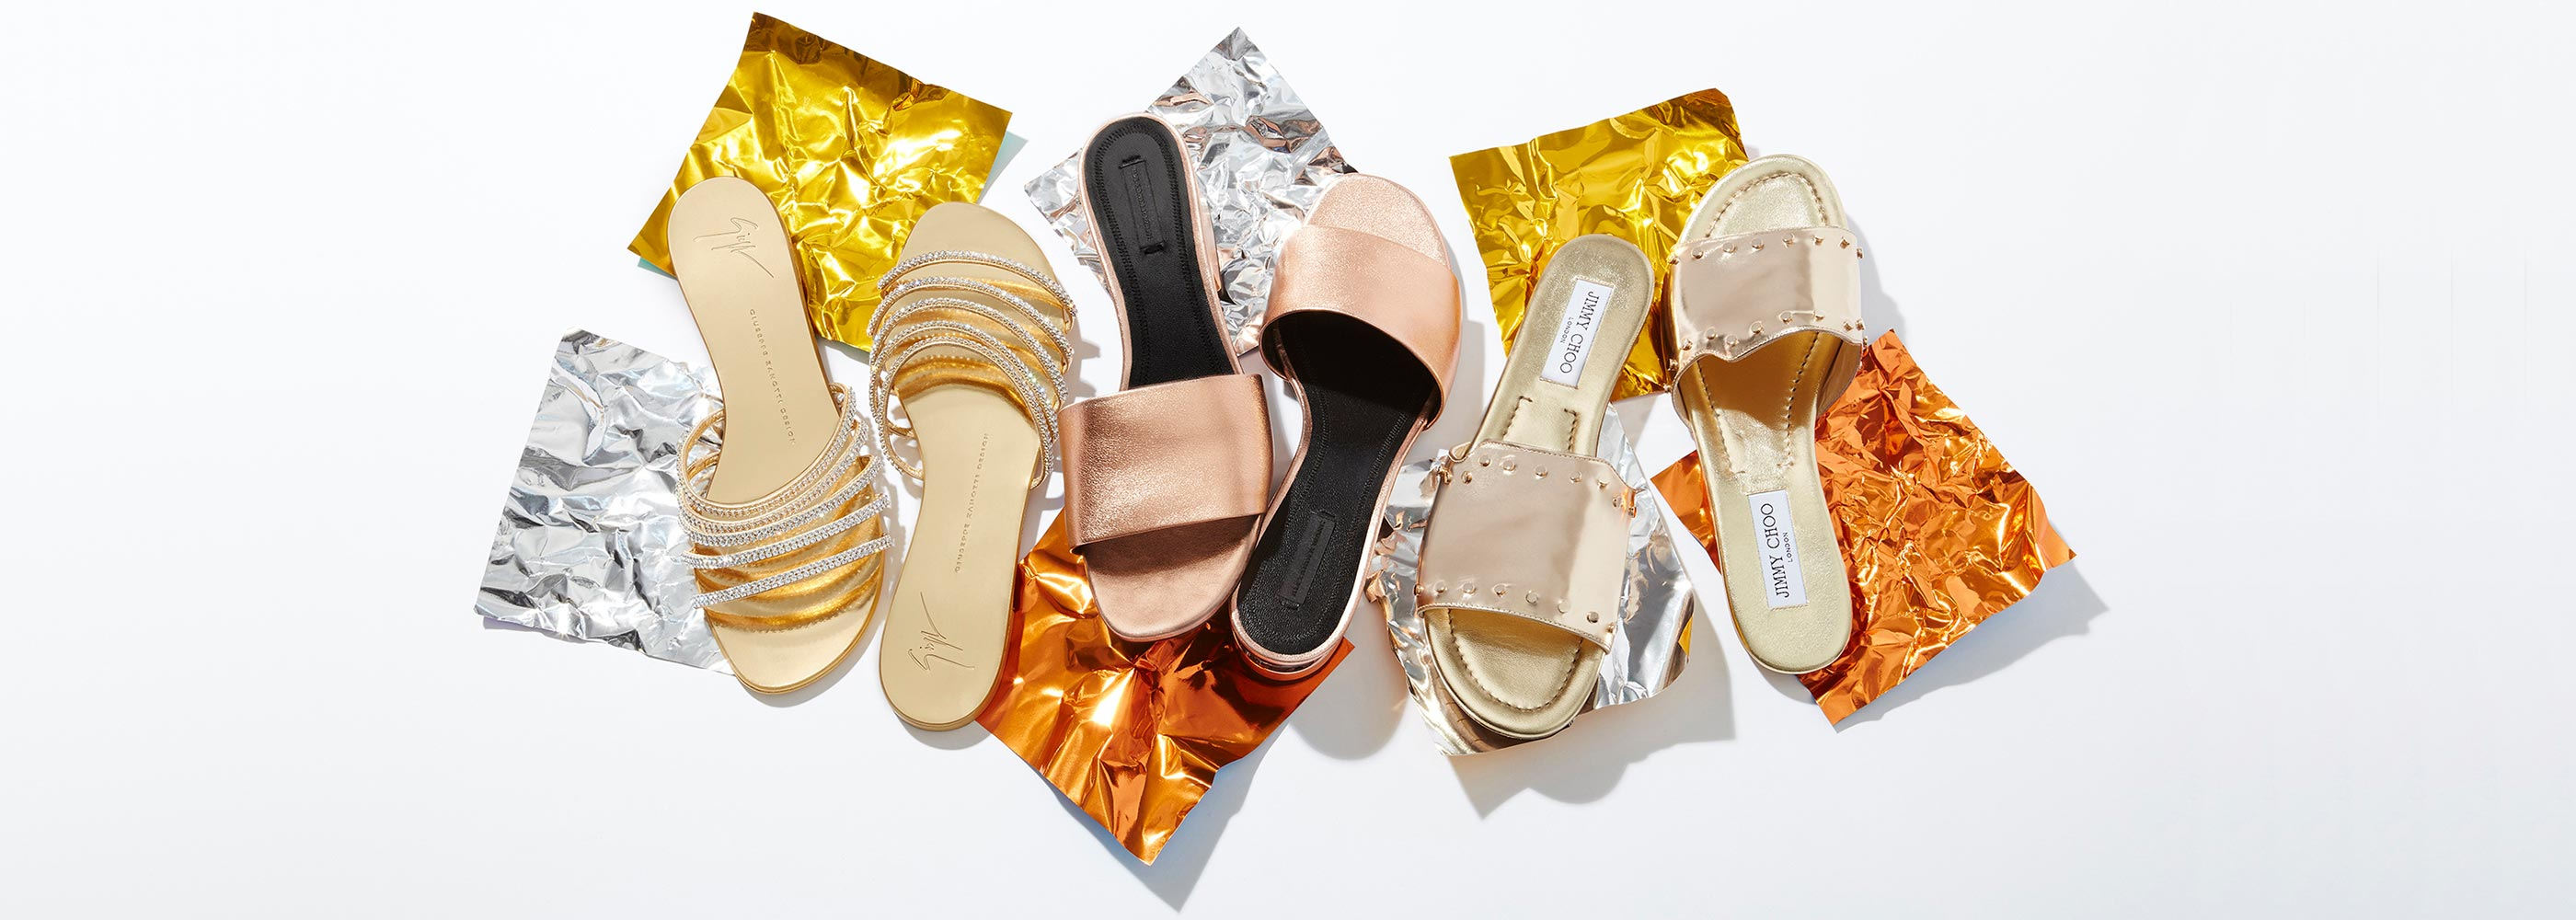 Just Add a Pedicure: Shop Sandals